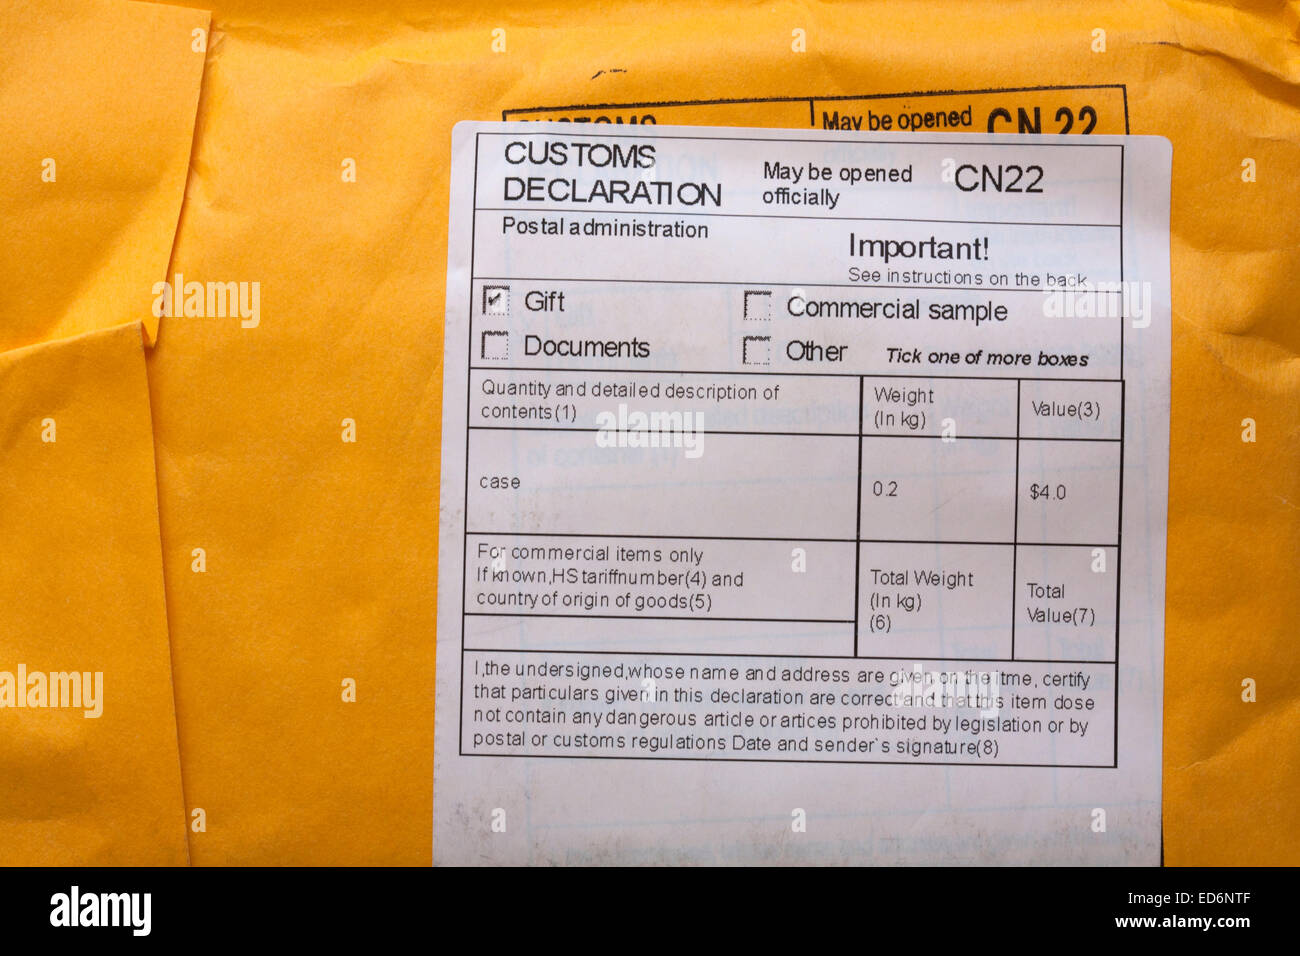 Customs declaration information on package stock photo 76980863 alamy customs declaration information on package thecheapjerseys Choice Image